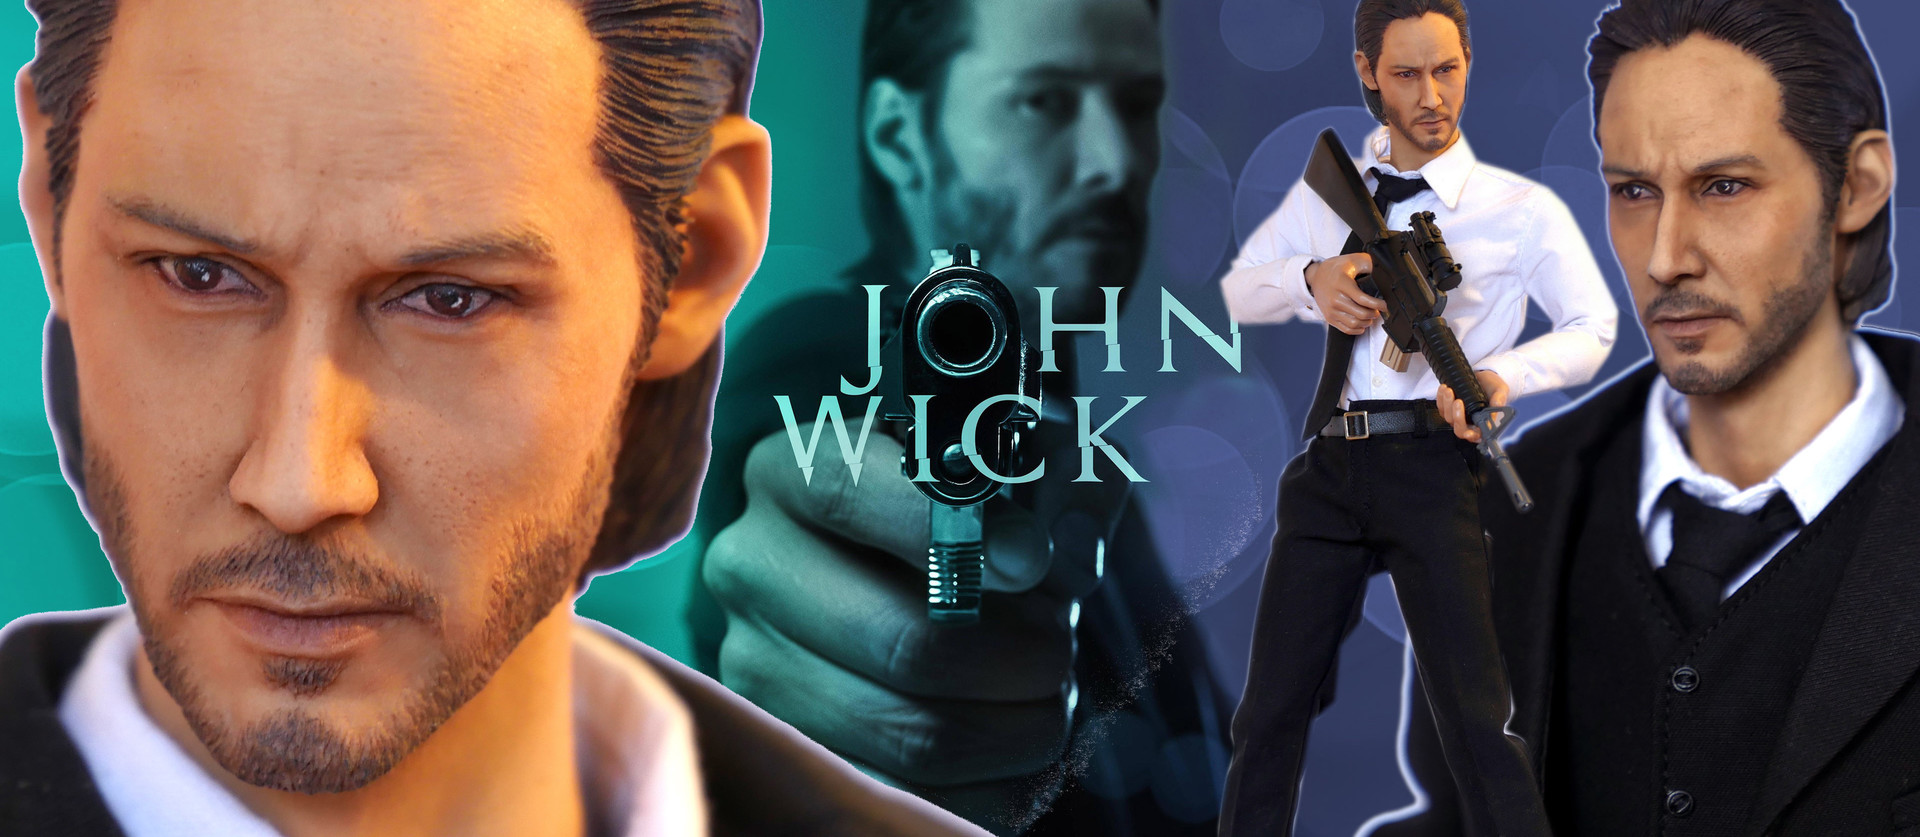 Michael enea johnwickheader